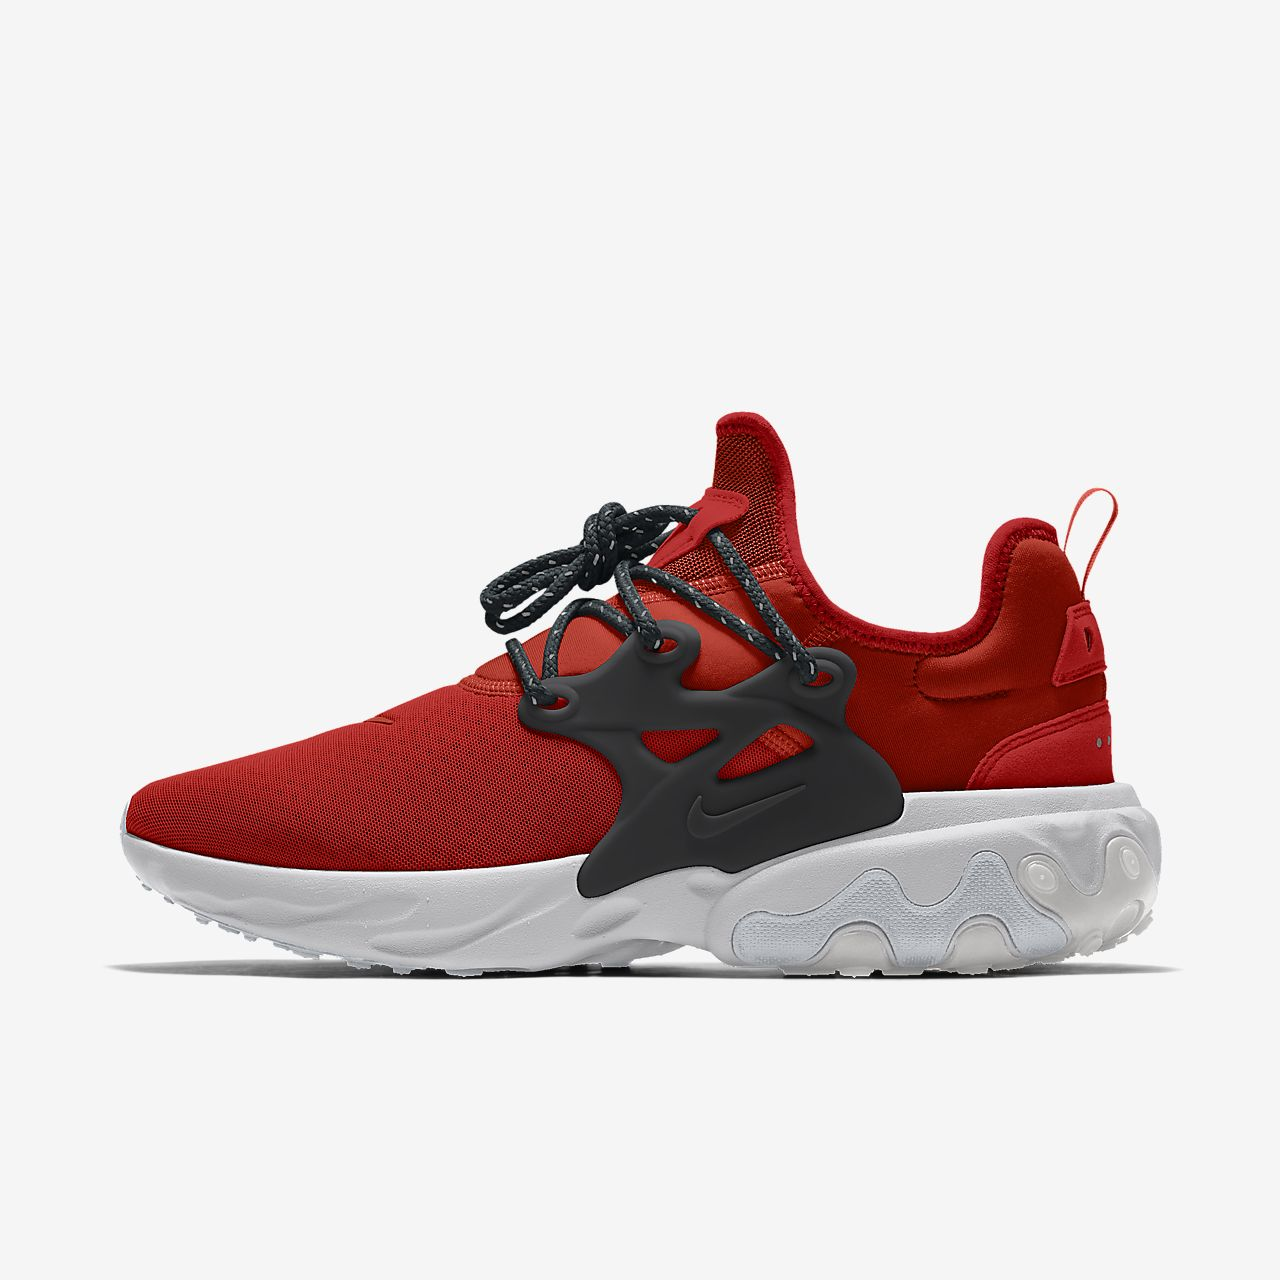 Scarpa personalizzabile Nike React Presto By You - Uomo